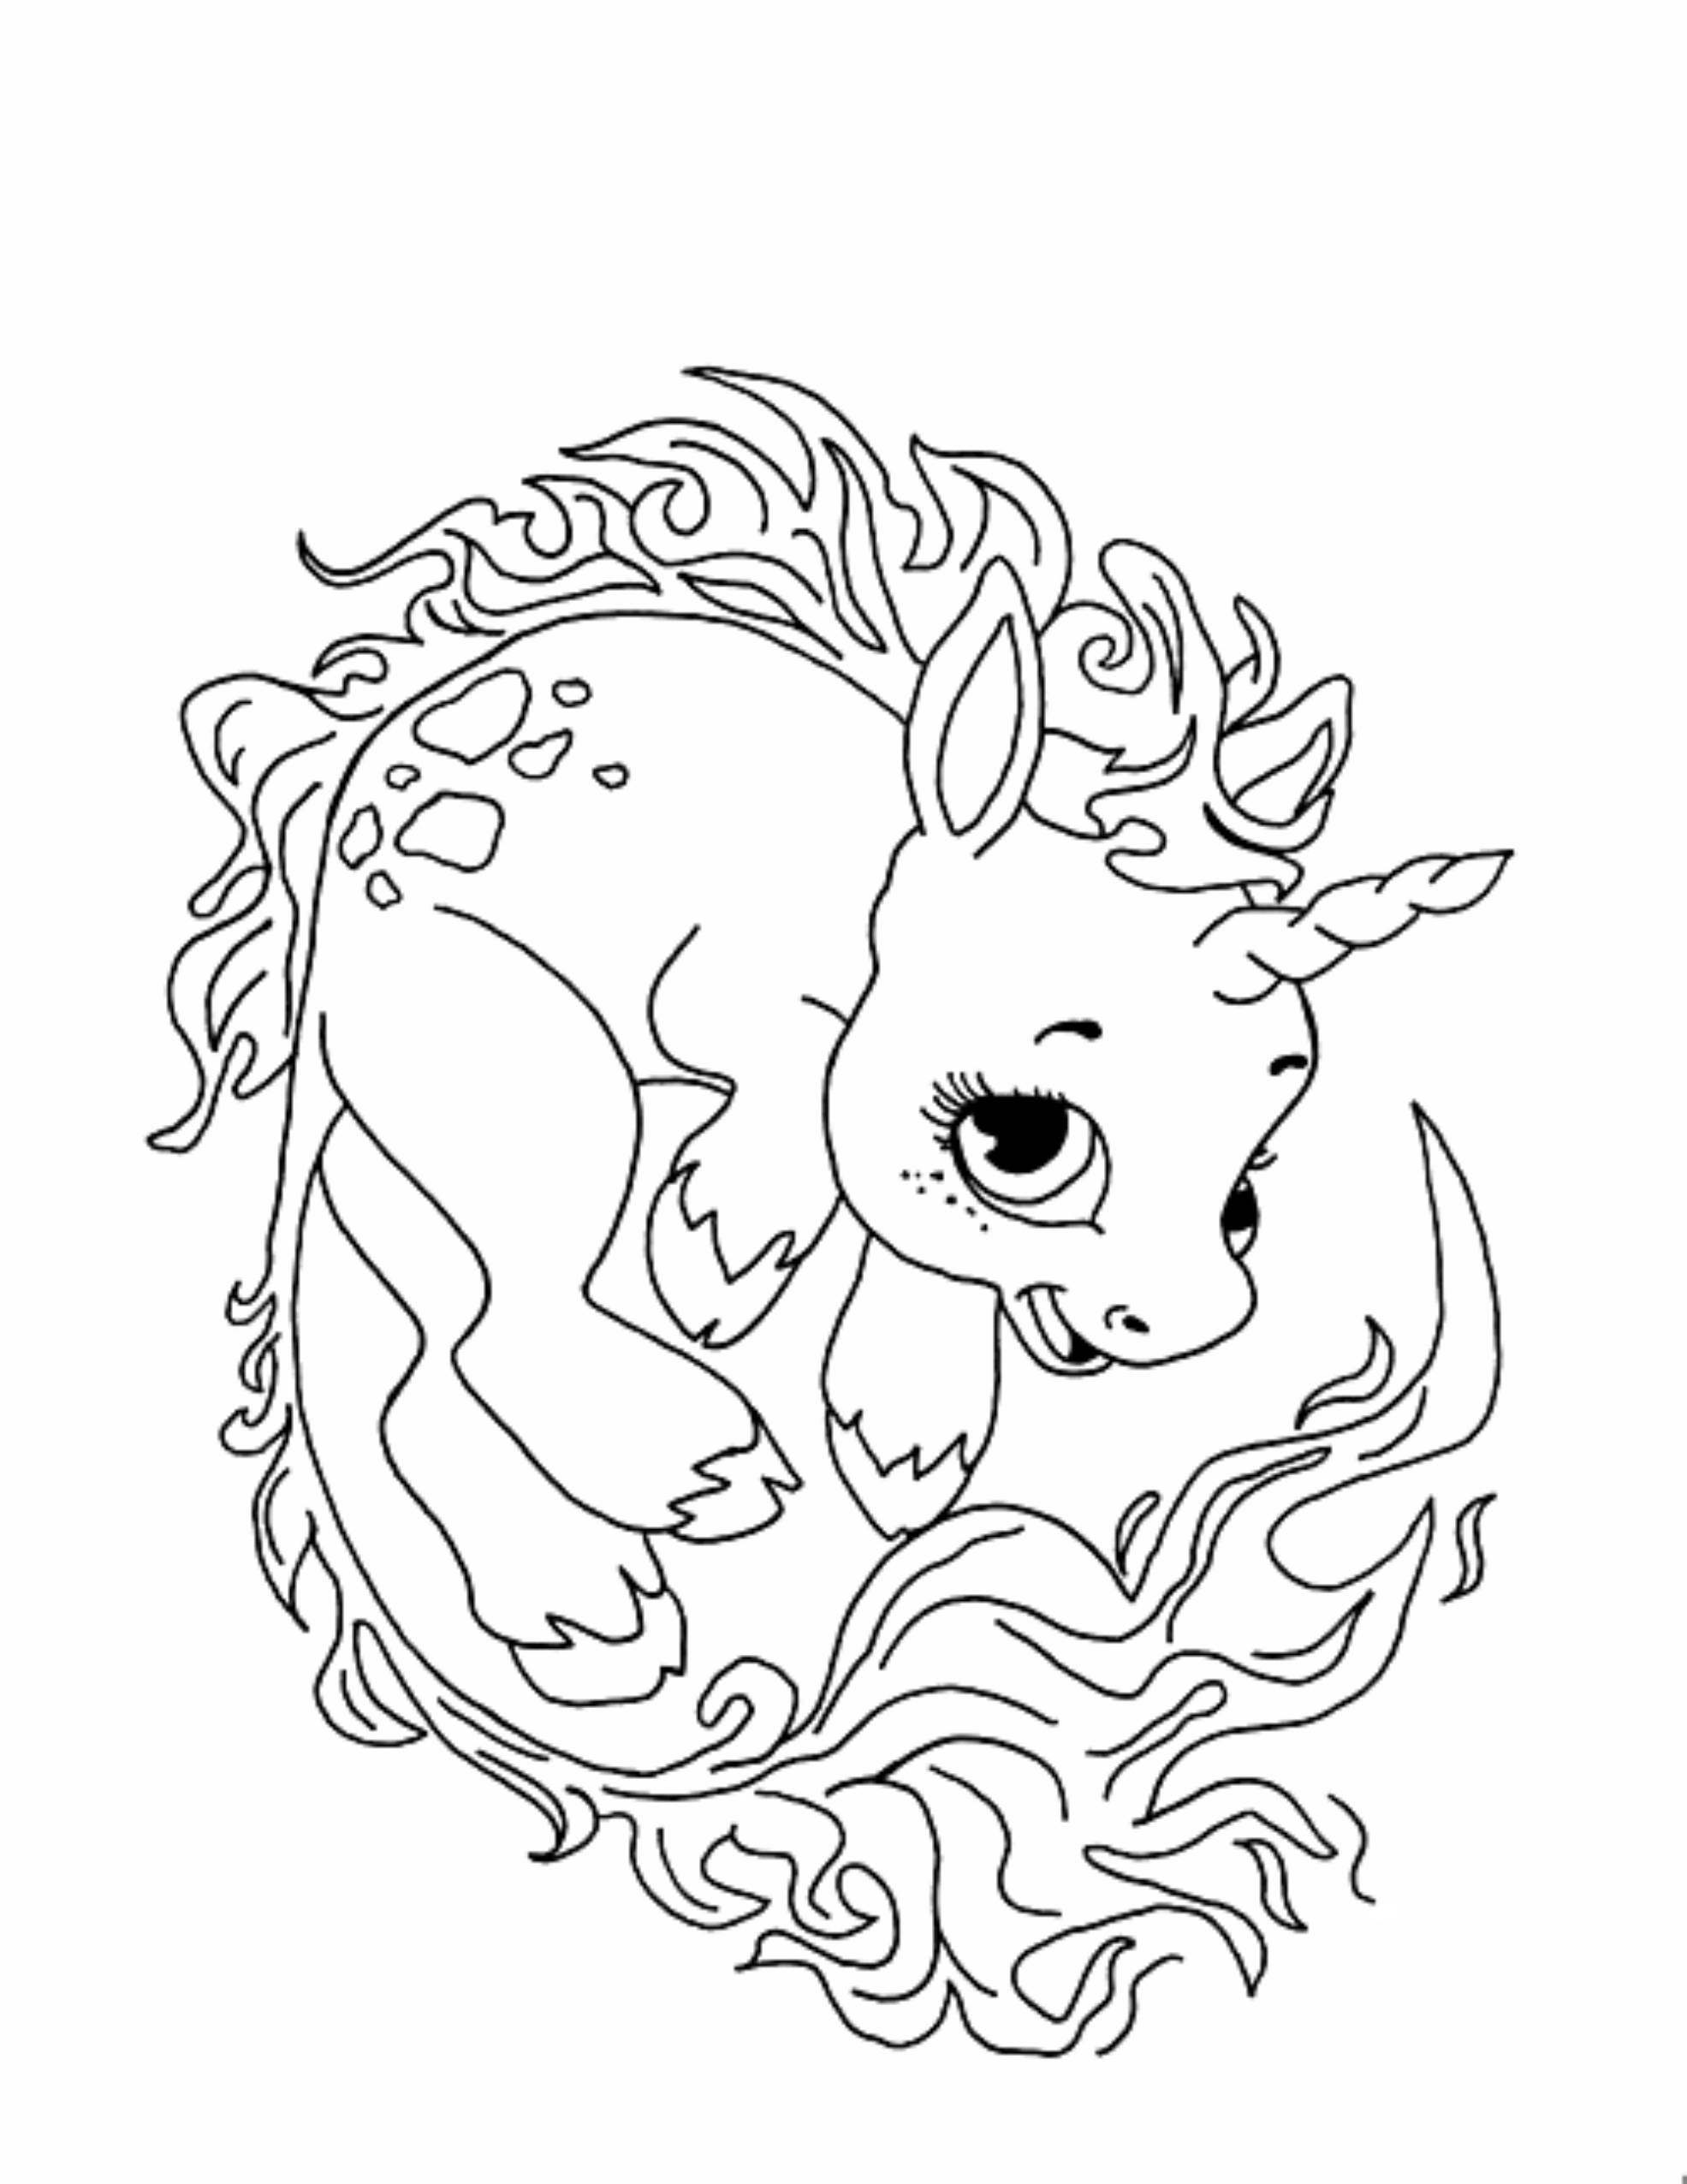 Printable Coloring Pages For Kids Unicorn  Unicorn Coloring Pages for Adults Bestofcoloring